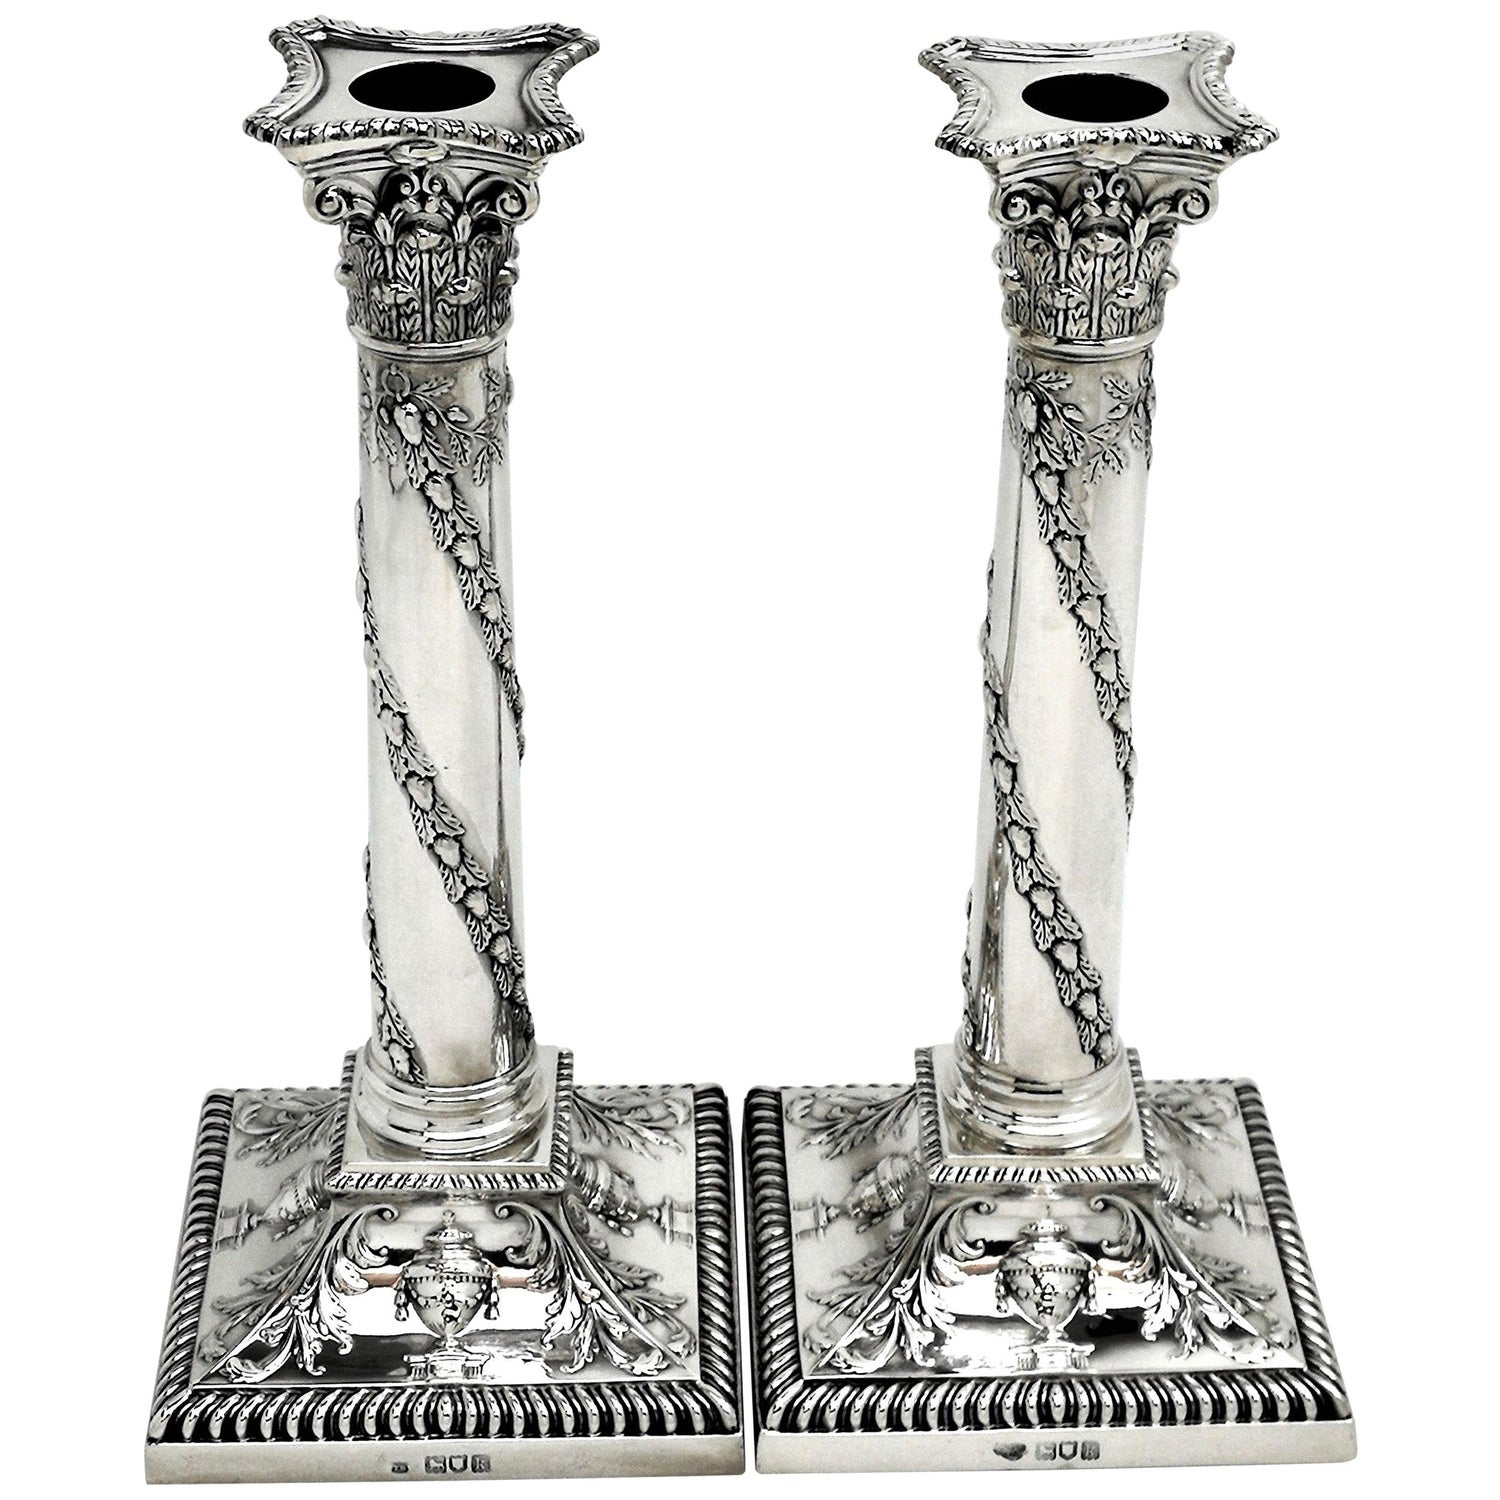 Pair of Antique Edwardian Sterling Silver Candlesticks, 1905